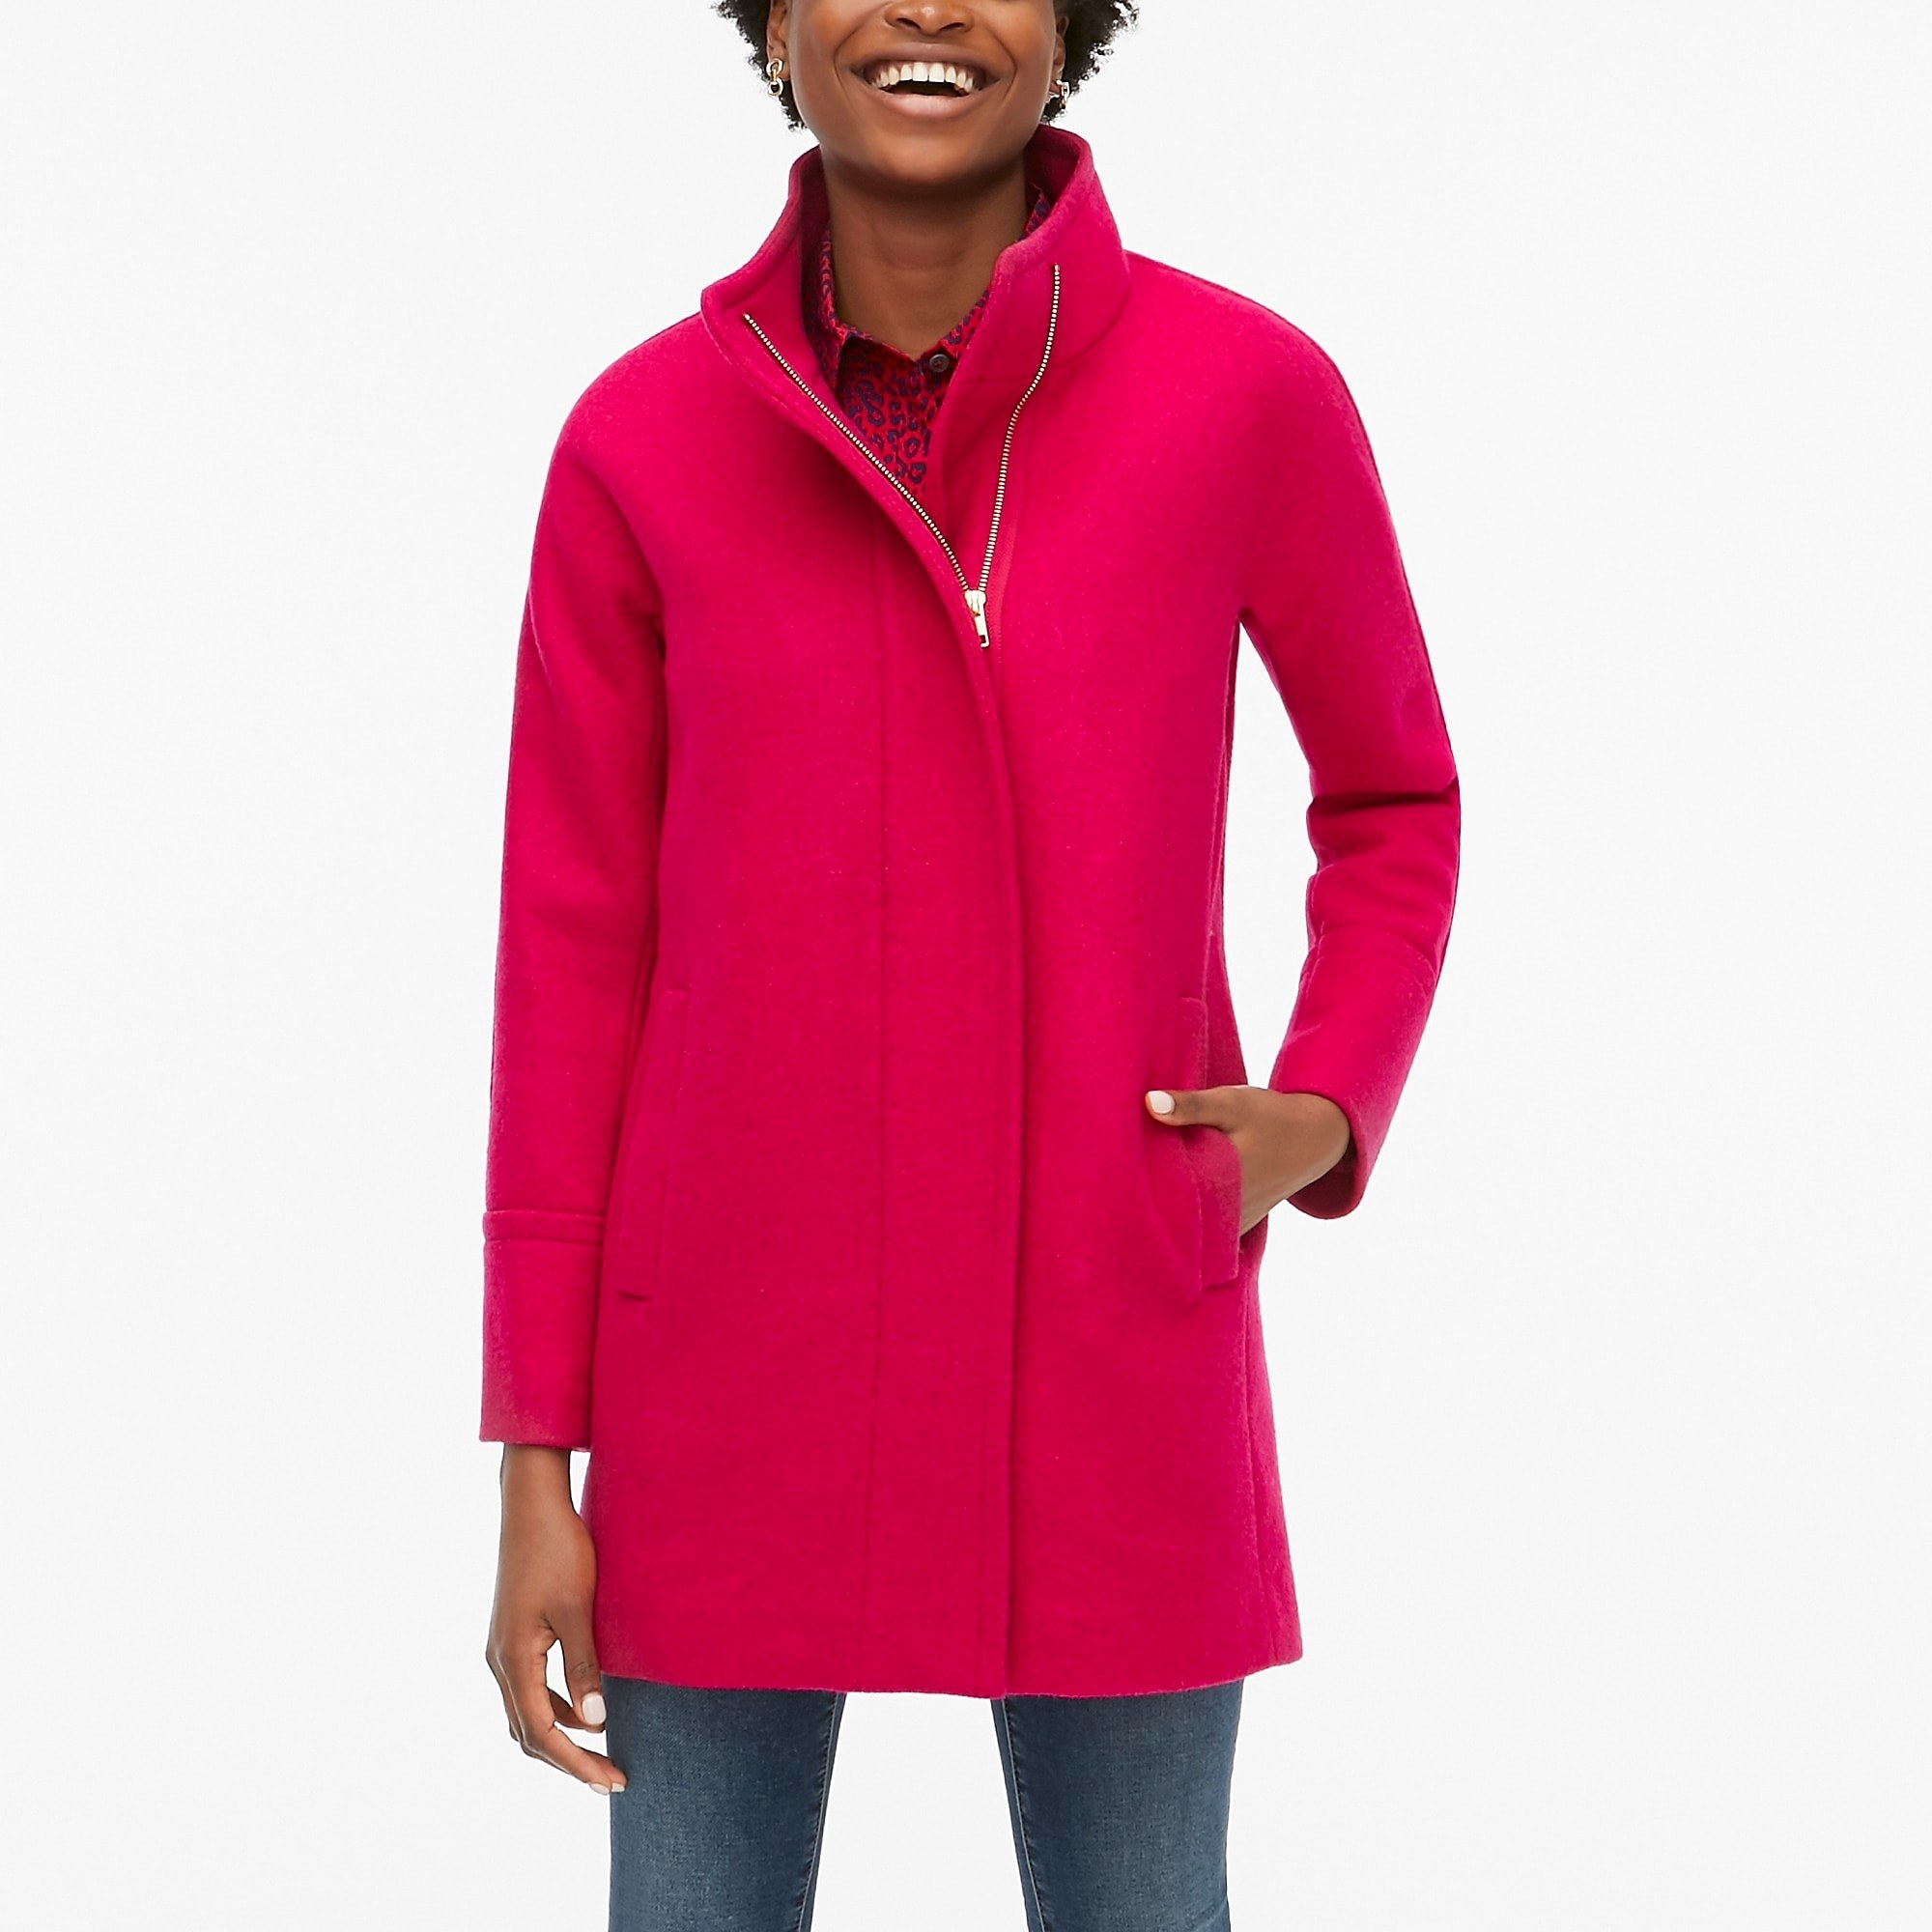 a model wearing the city coat in bright pink